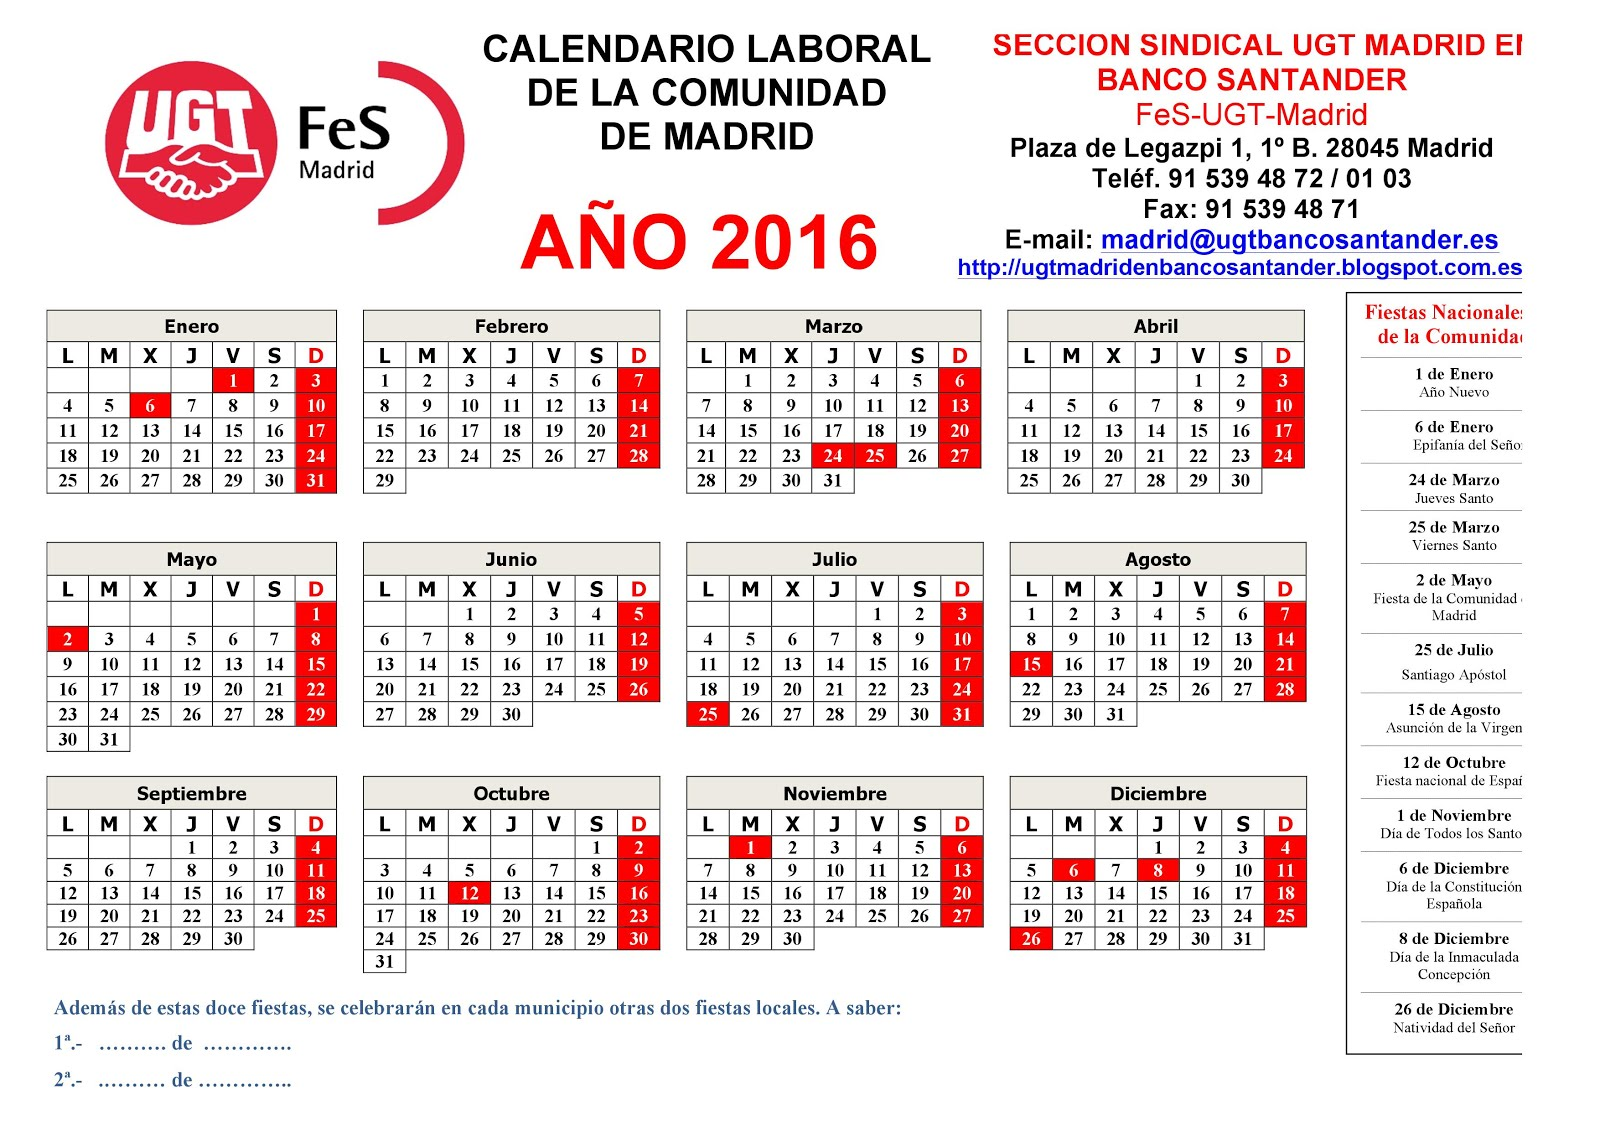 CALENDARIO LABORAL 2016 (imprimible)